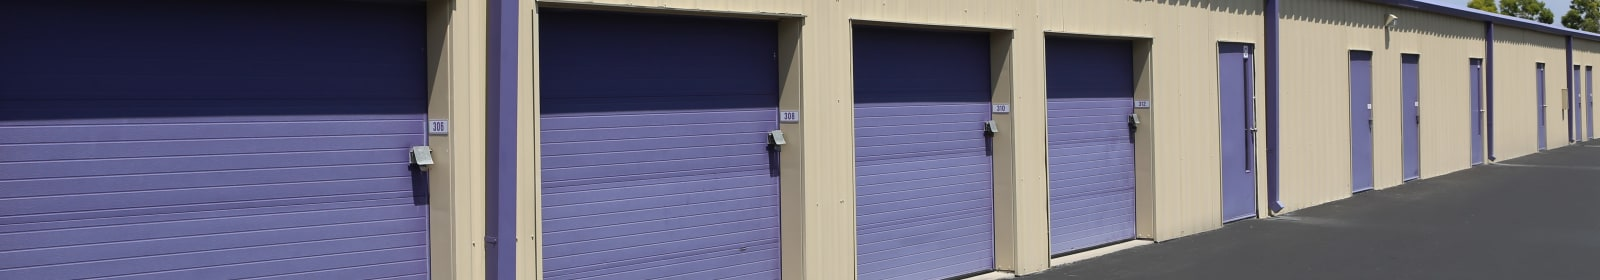 Information about the neighborhood at Midgard Self Storage in Lexington, South Carolina